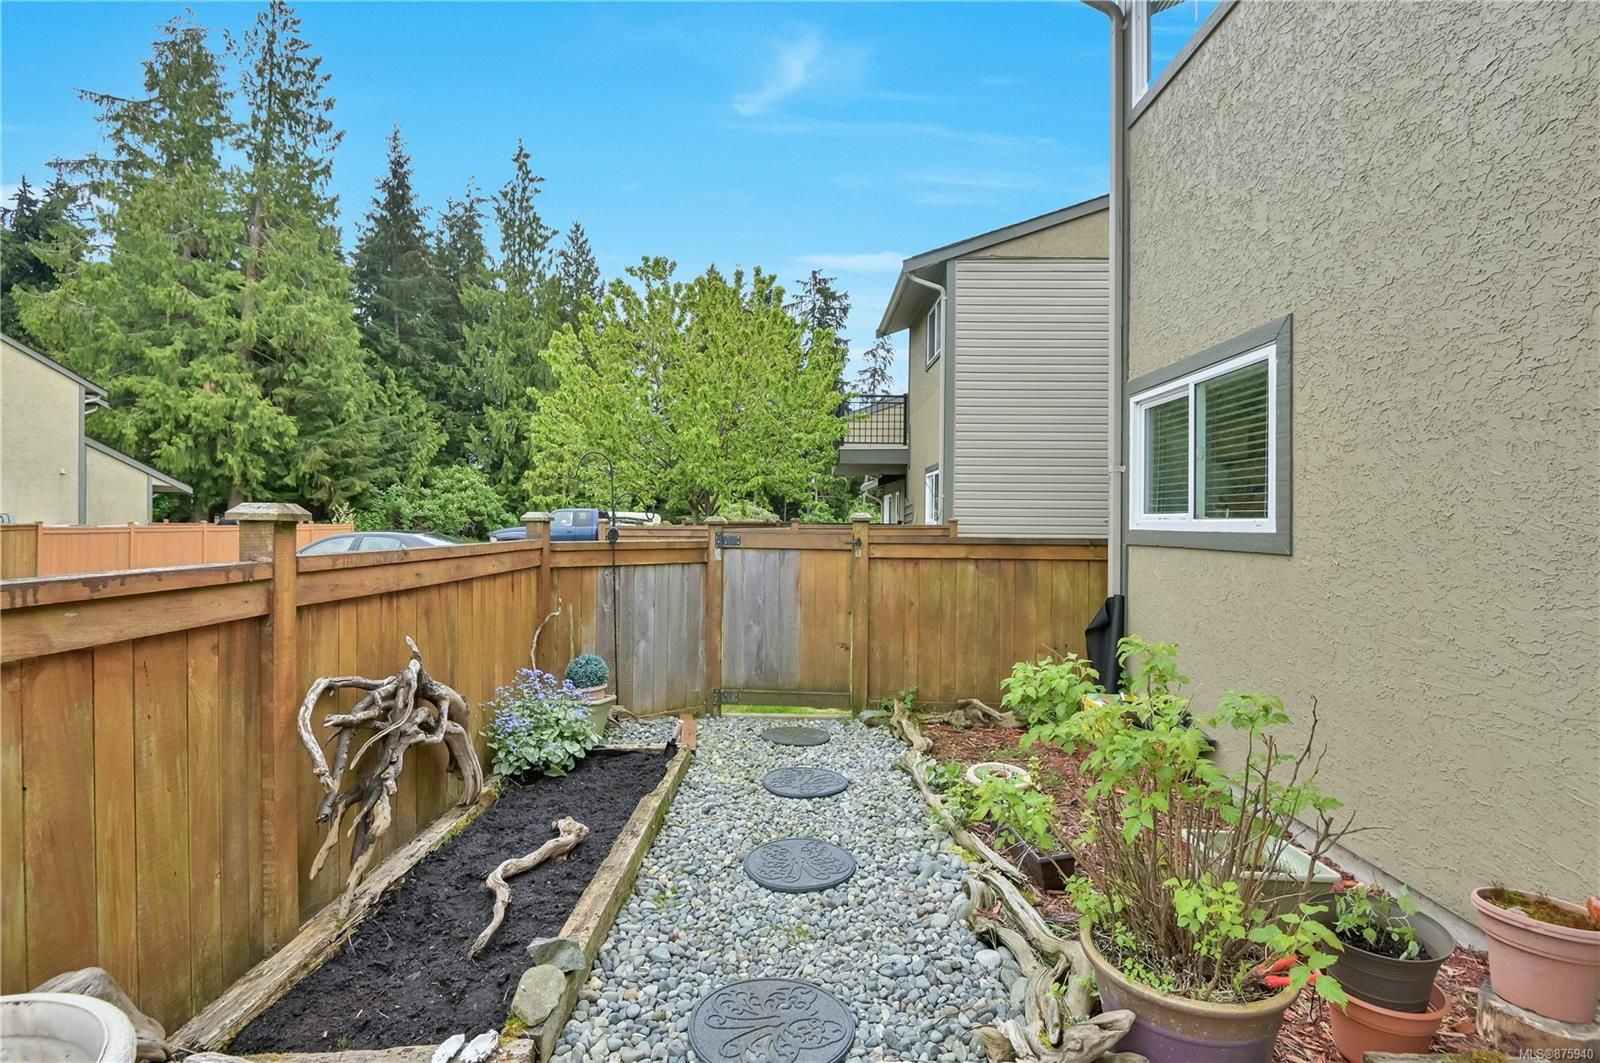 Main Photo: 23 9130 Granville St in : NI Port Hardy Row/Townhouse for sale (North Island)  : MLS®# 875940